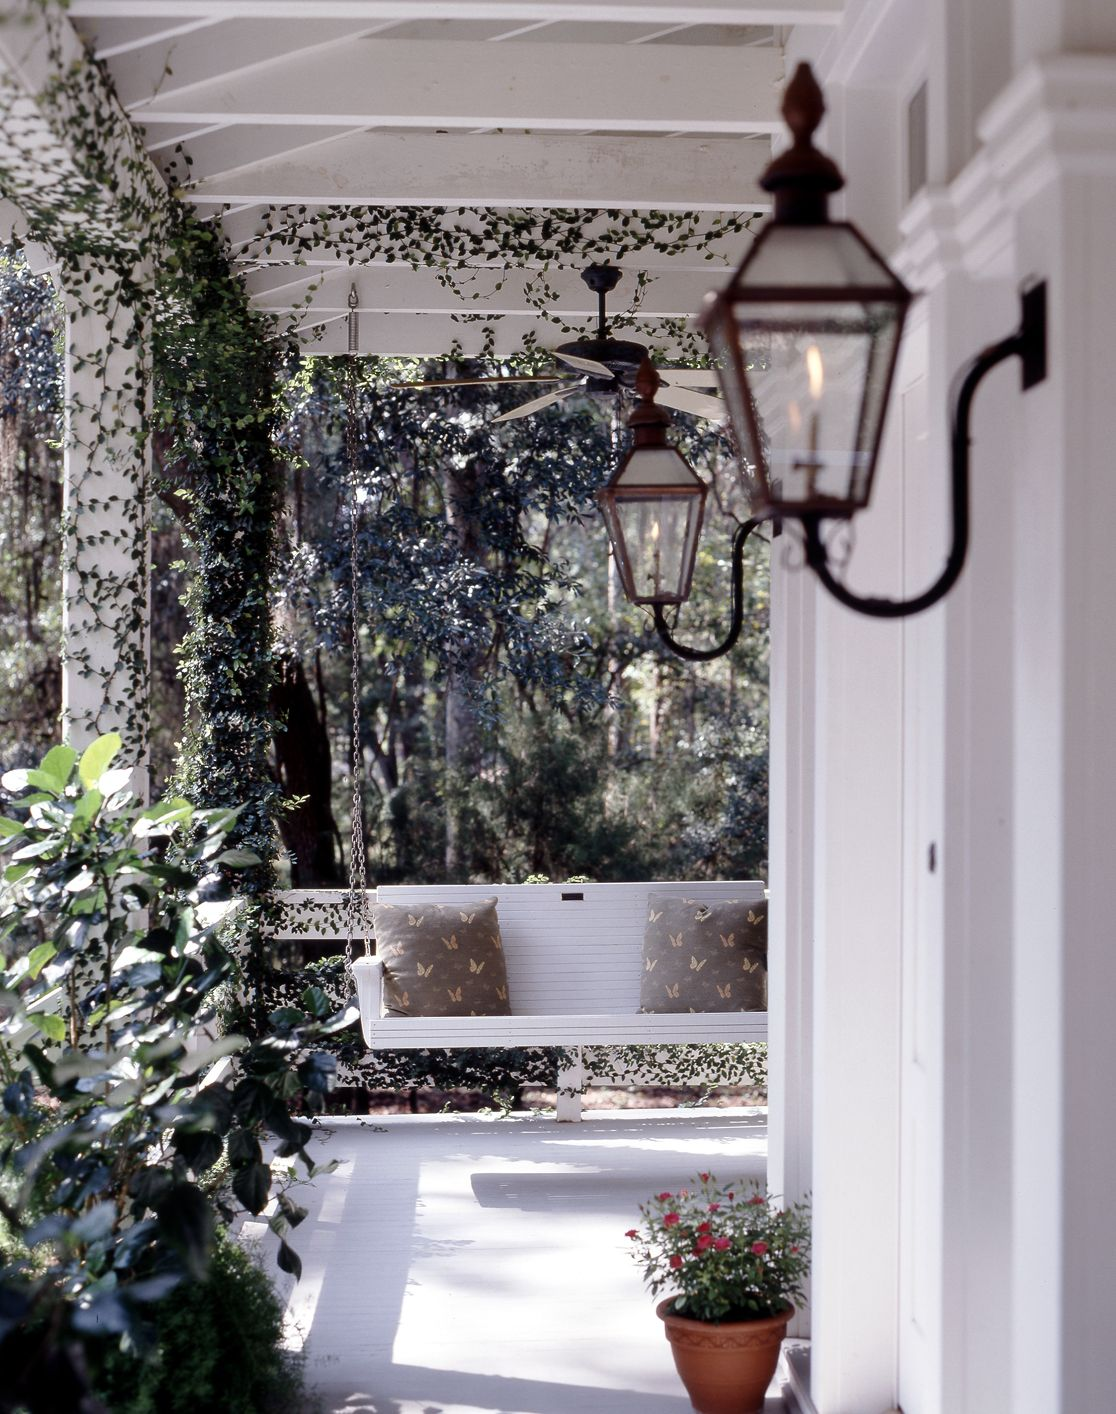 A Traditional Front Porch With Antique Gas Light And Porch Swing Www Historicalconcepts Com Porch Lighting Traditional Porch Gas Lanterns